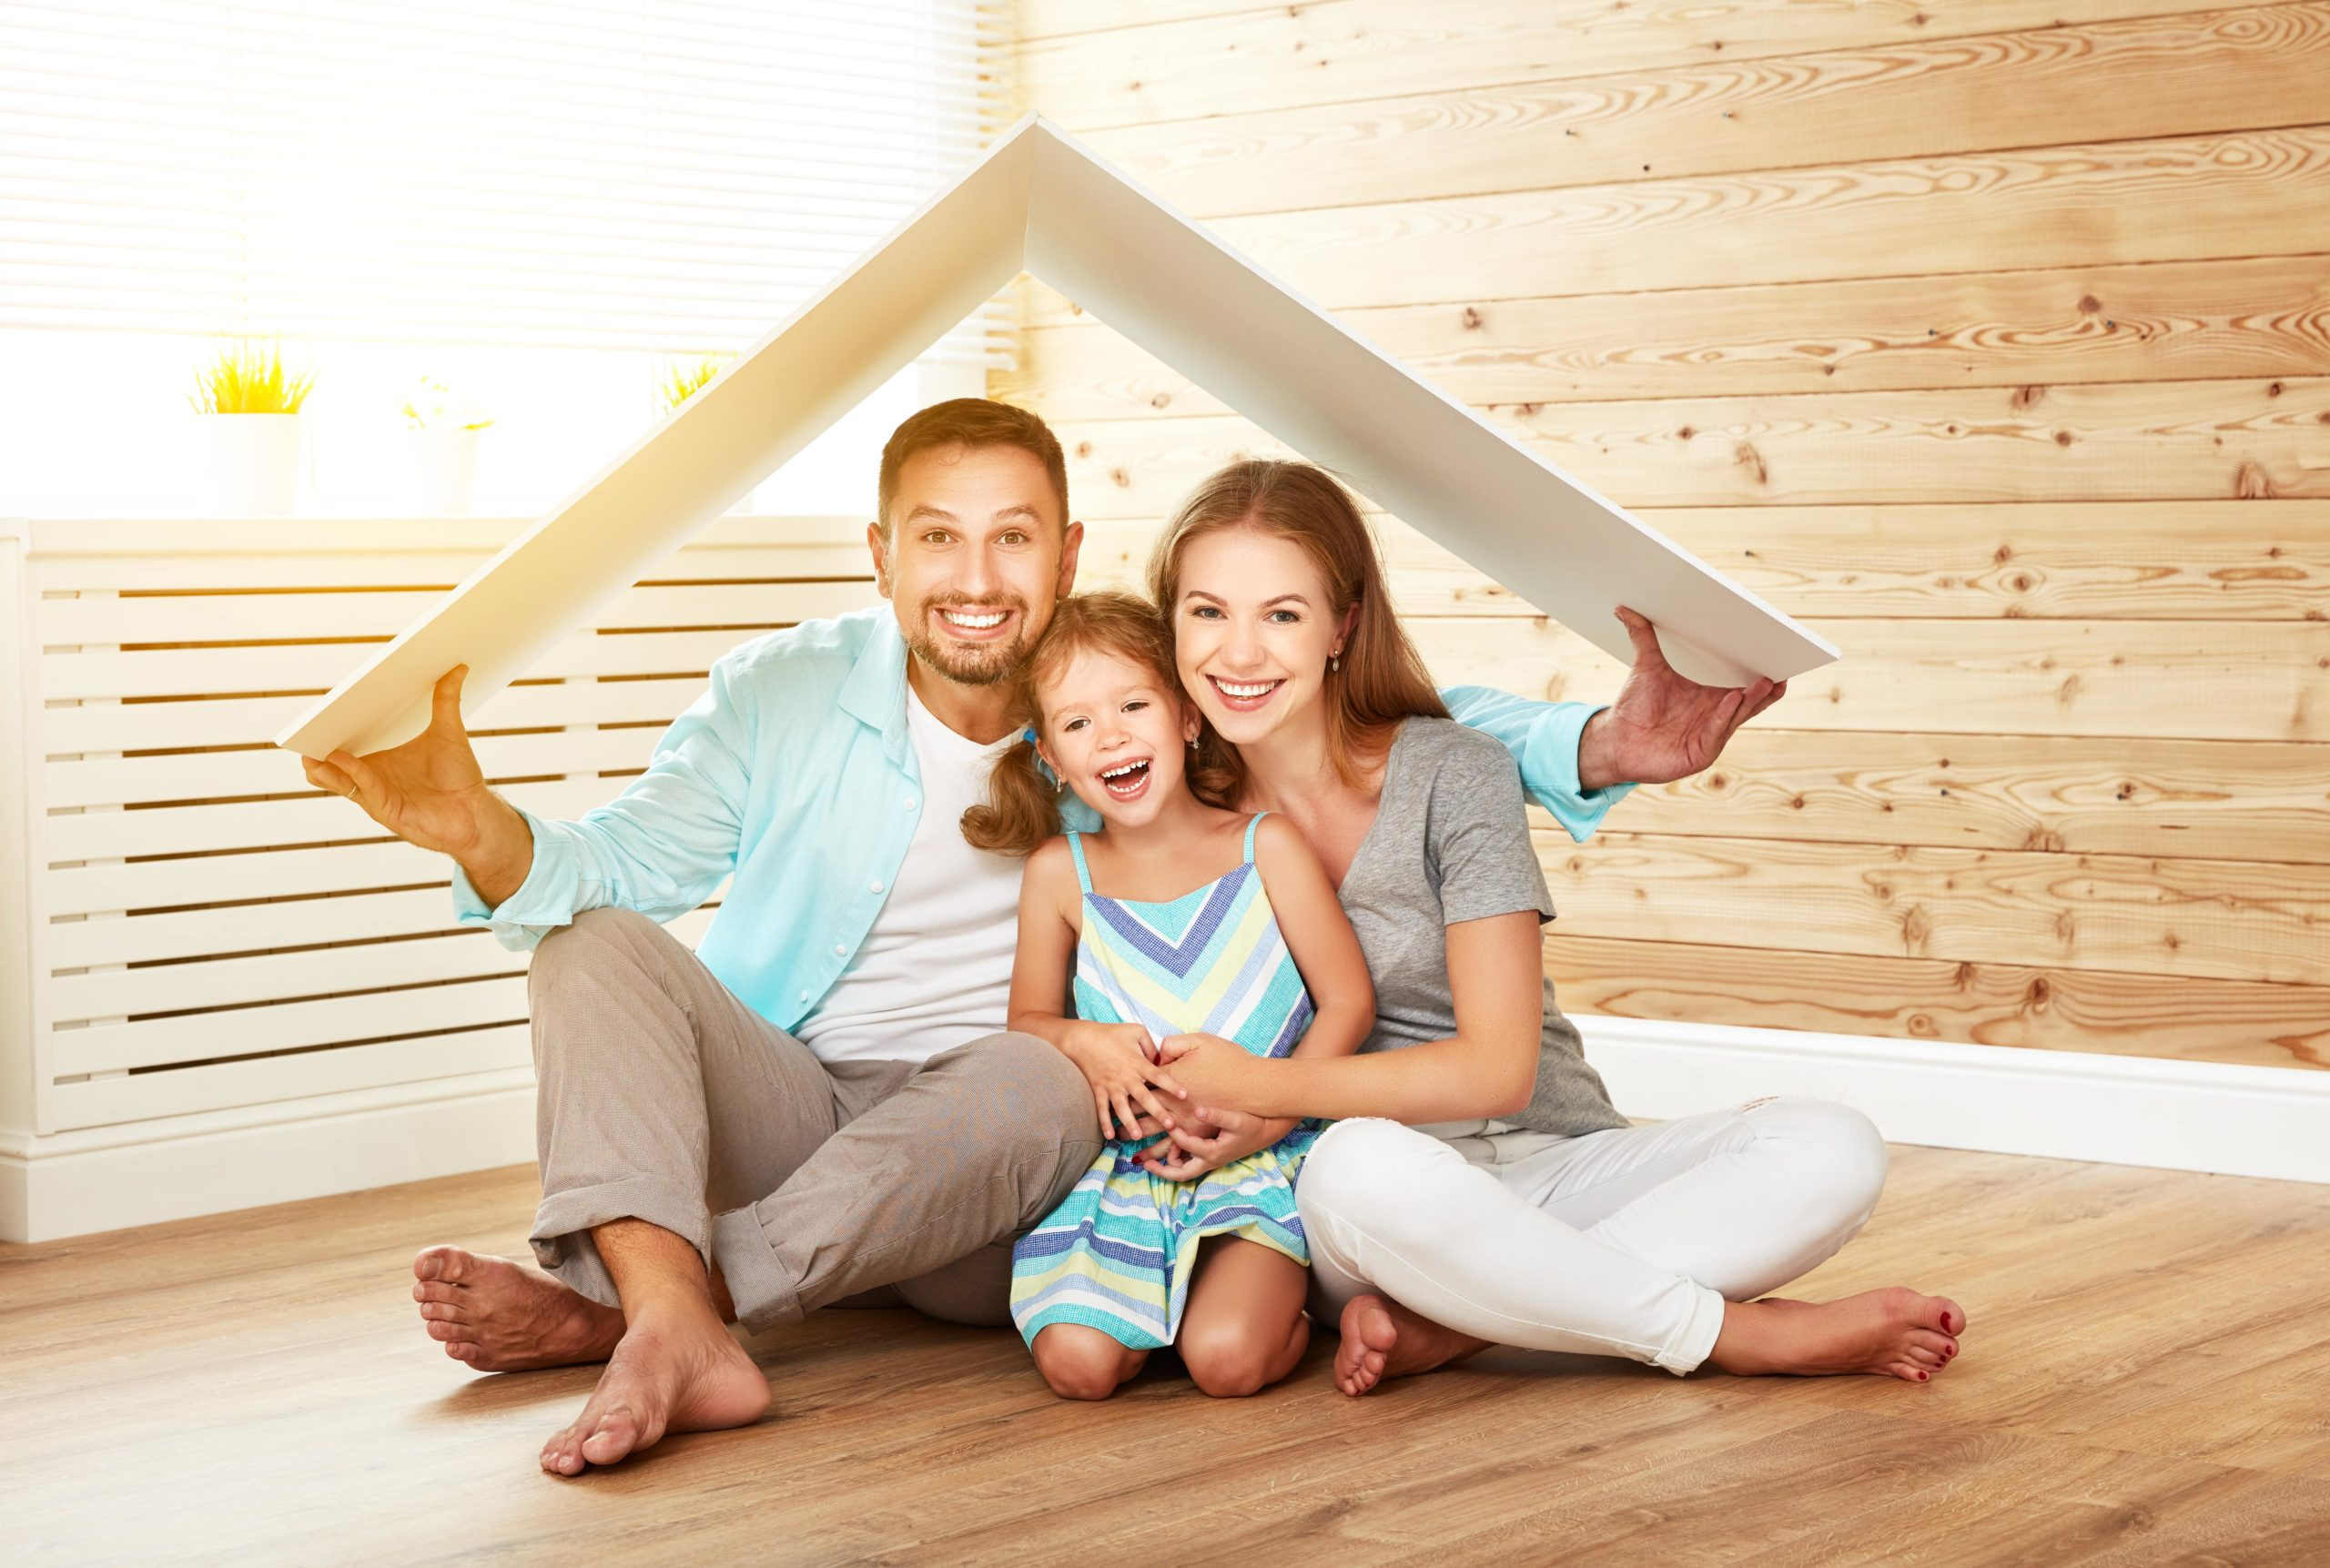 man holding small roof over himself, wife and daughter